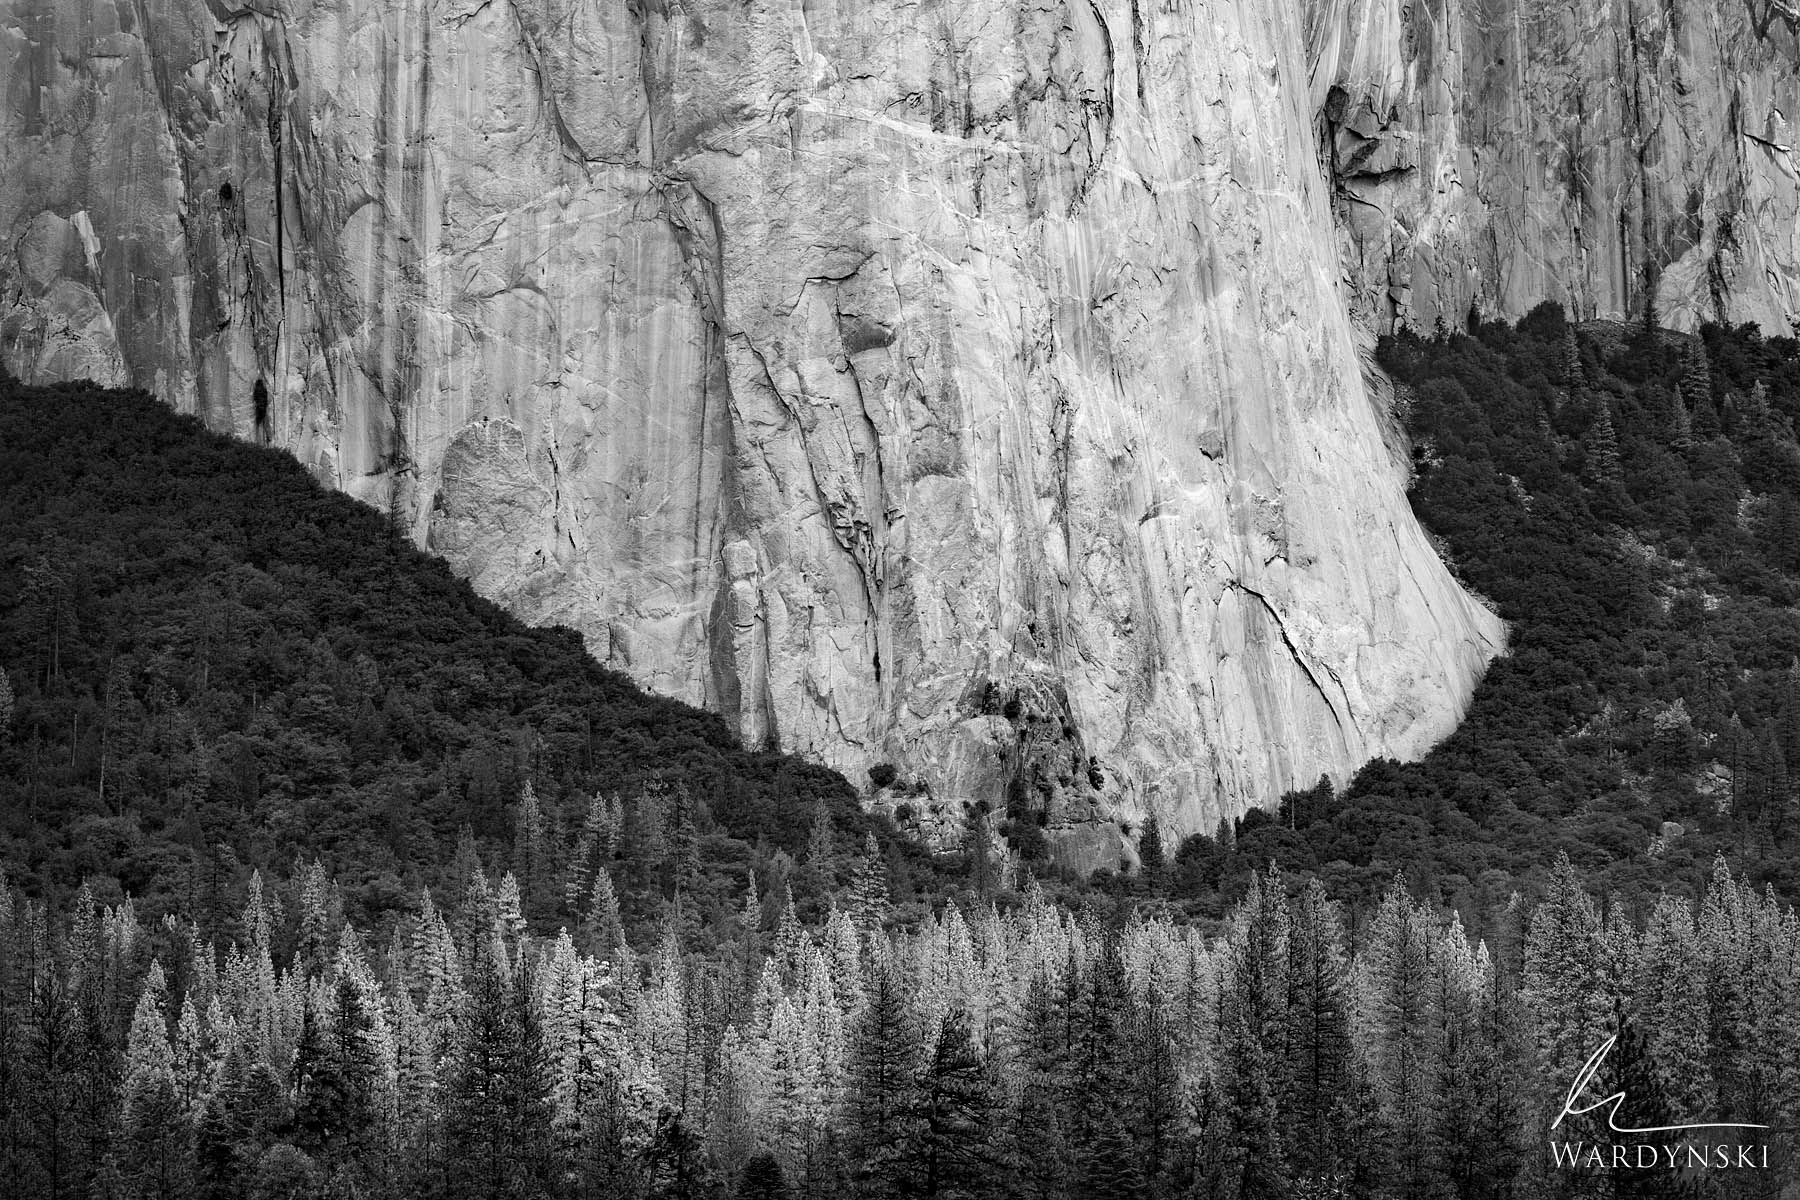 Fine Art Black and White Print - Limited Edition of 25  Like the foot of a giant, the nose of El Capitan dwarfs the trees surrounding...